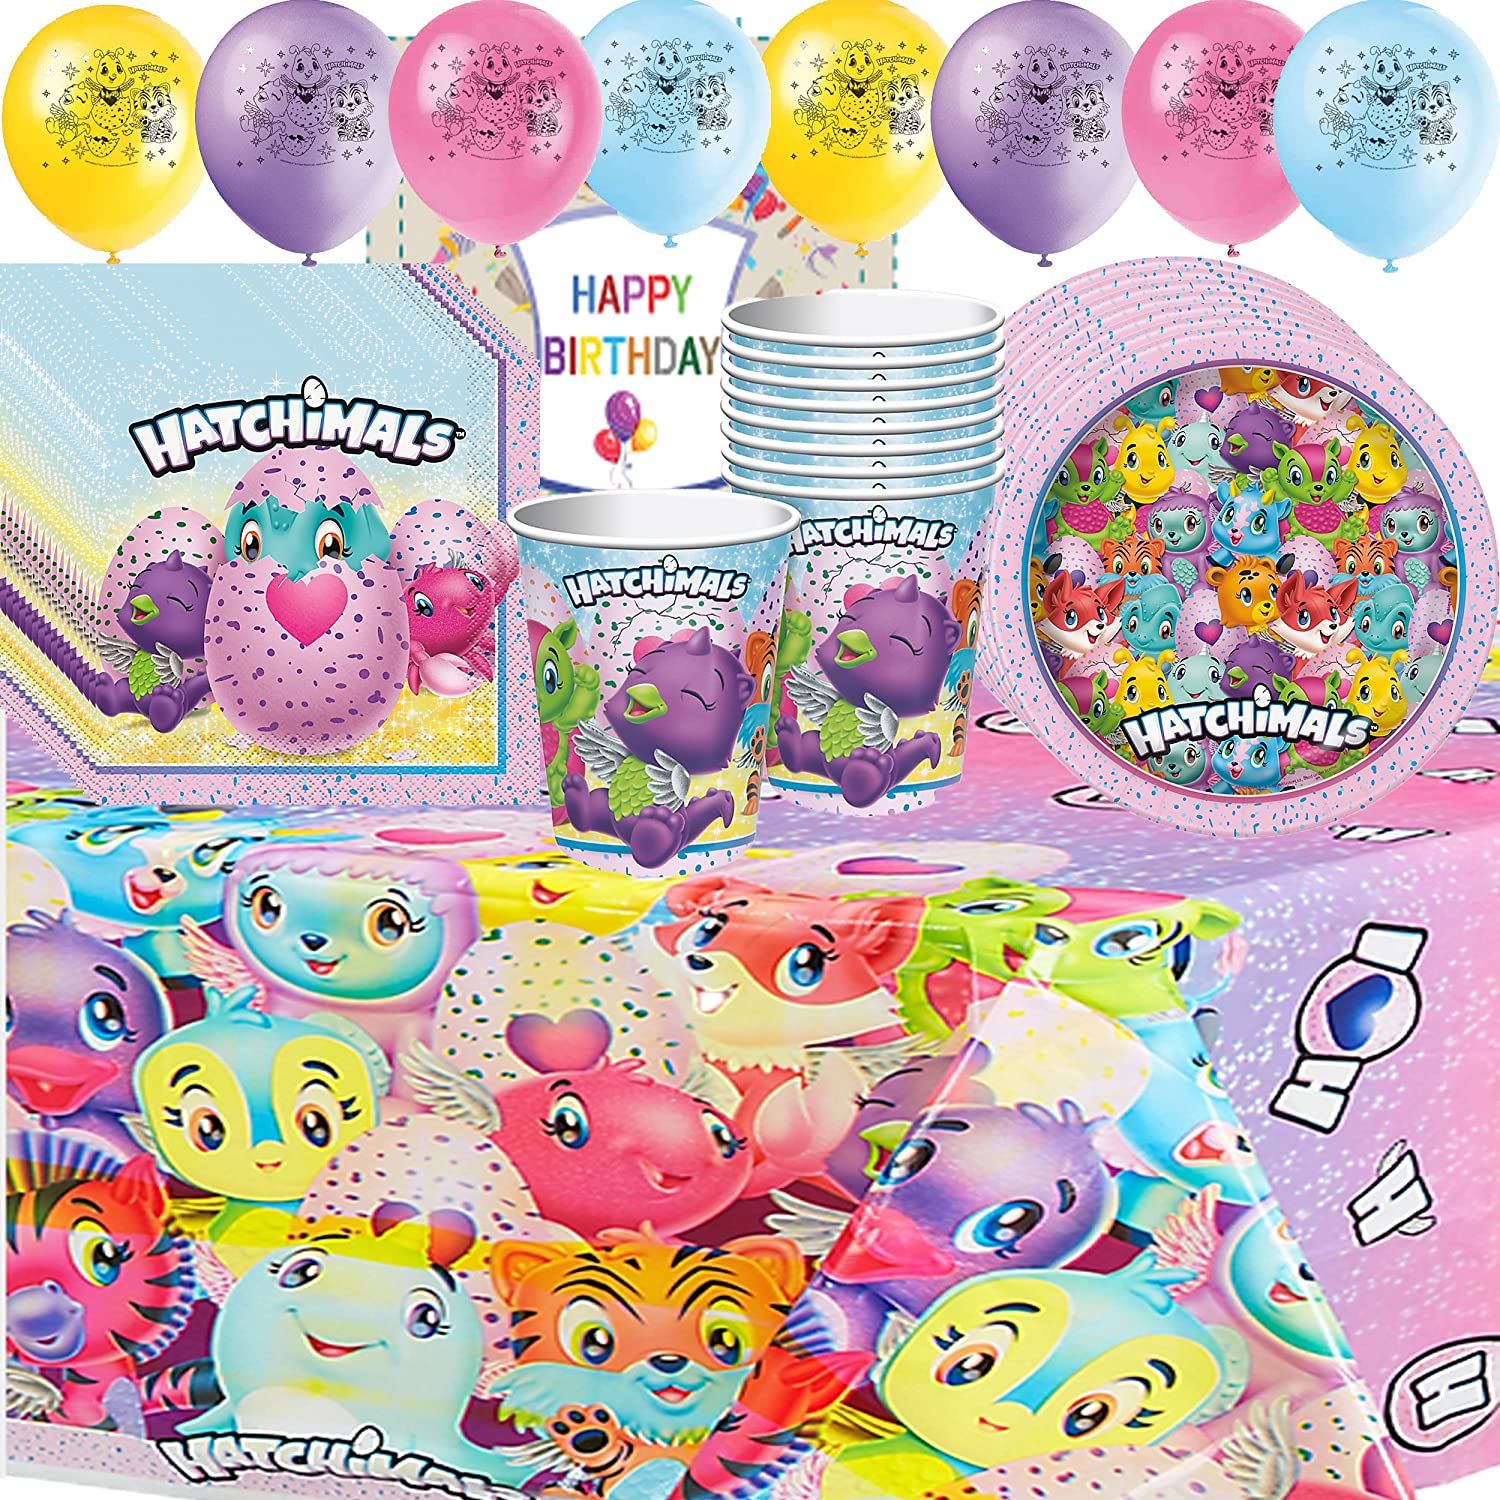 50OFF Hatchimals Birthday Party Supplies Pack